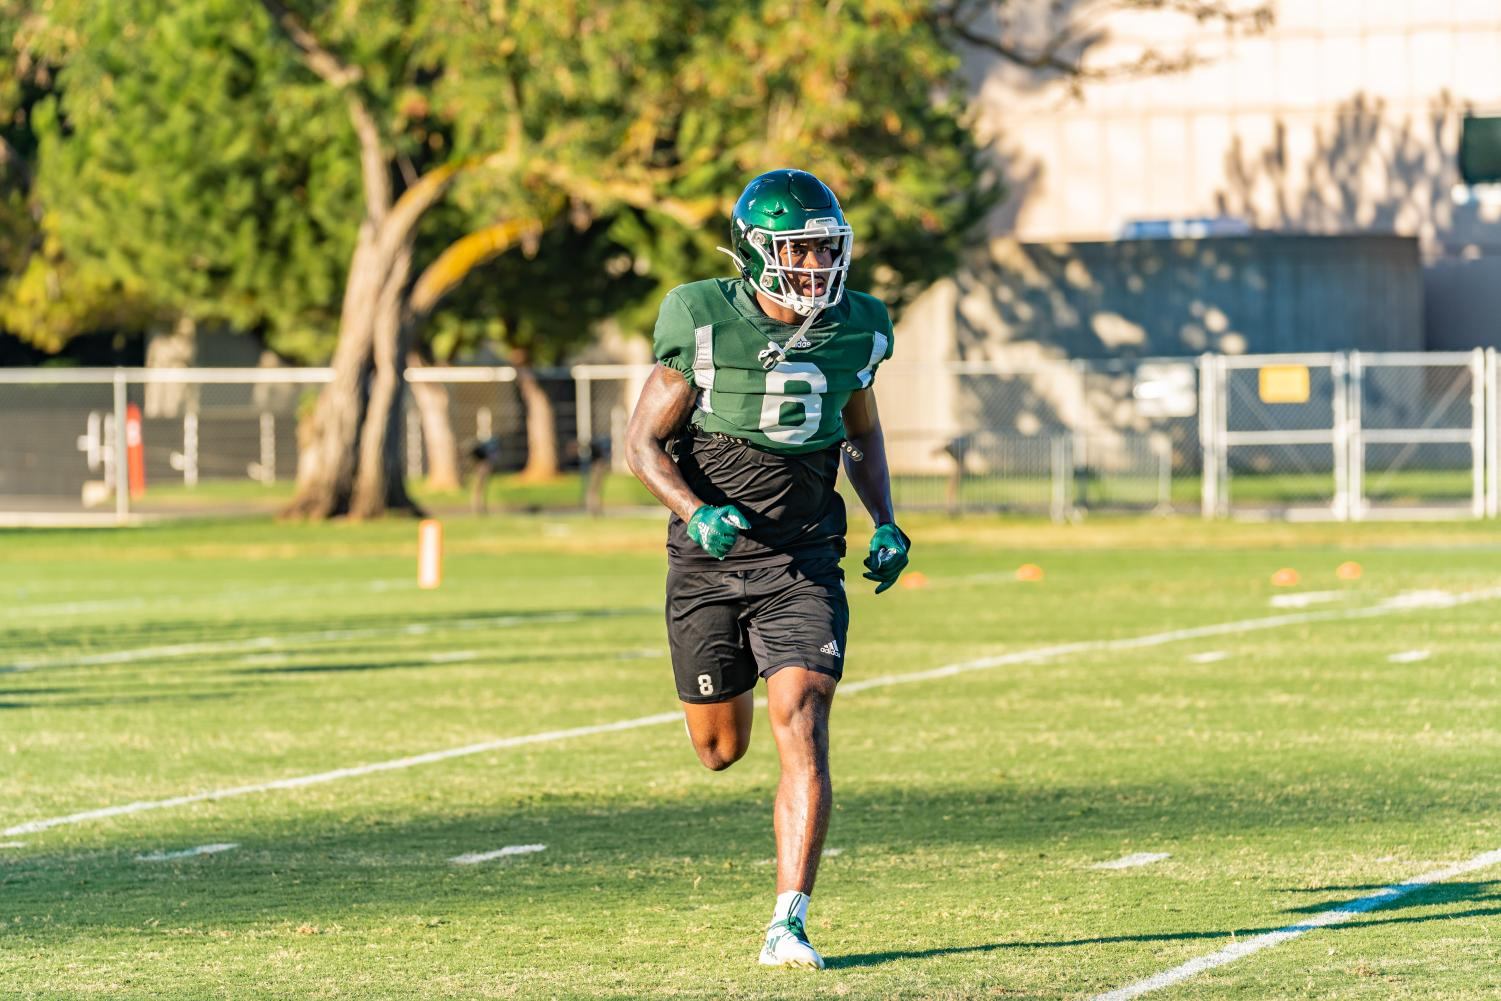 Sac+State+senior+defensive+back+Caelan+Barnes+sprints+during+training+camp+on+Tuesday%2C+August+12+at+the+practice+field.+Barnes+started+all+ten+games+at+cornerback+for+Sac+State+in+2018.